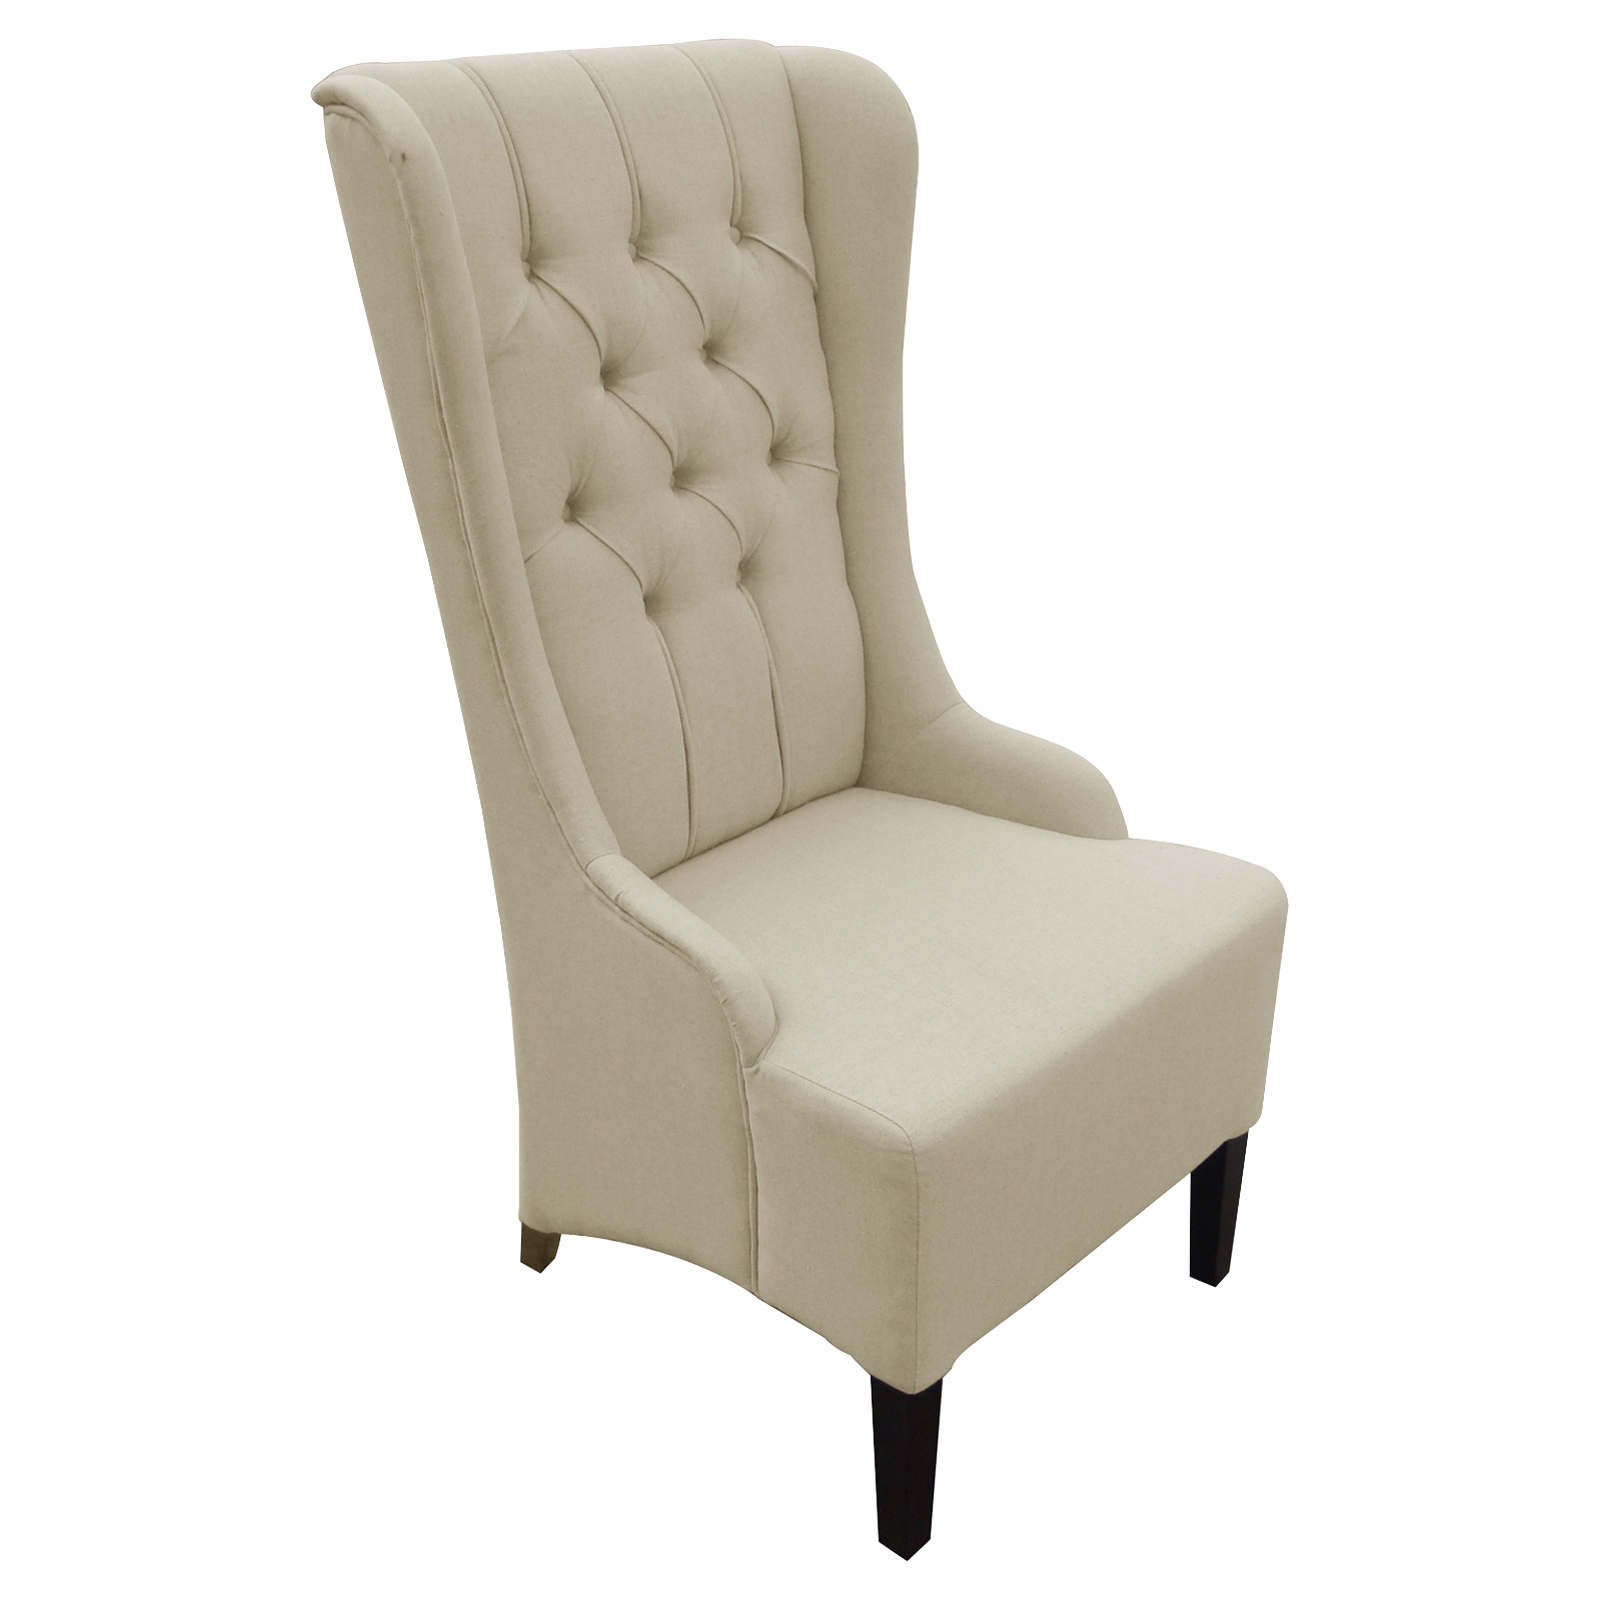 Accent Chairs Modern Baxton Studio Beige Linen Modern Accent Chair Accent